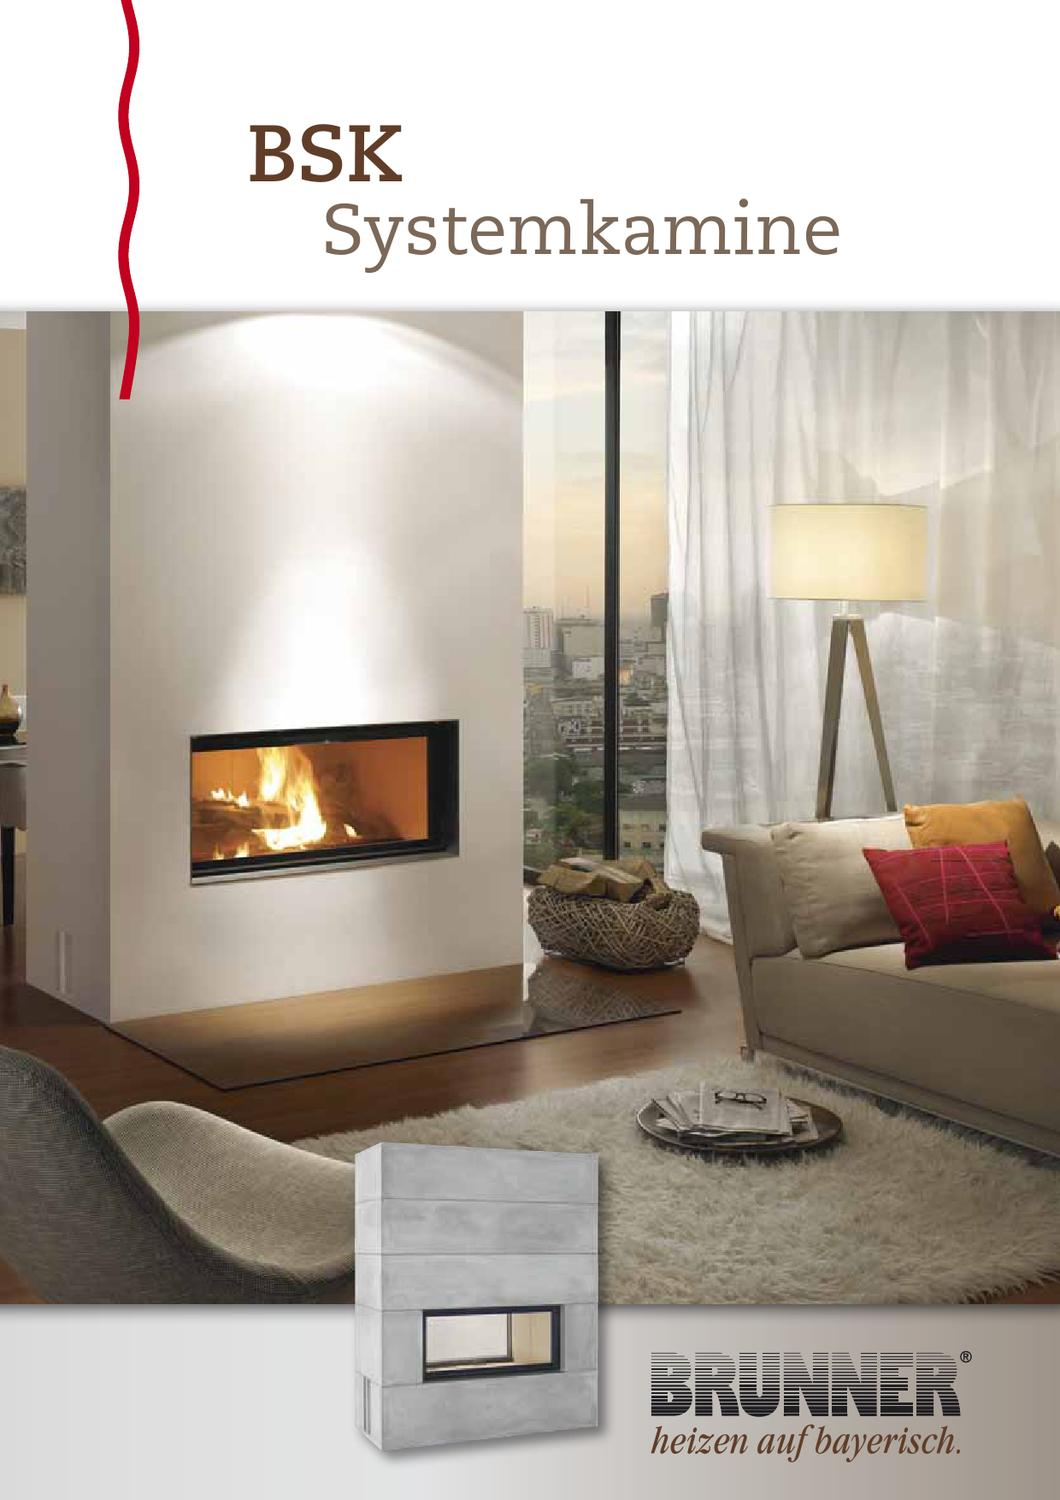 brunner bsk systemkamine by stude feuerungstechnik gmbh issuu. Black Bedroom Furniture Sets. Home Design Ideas